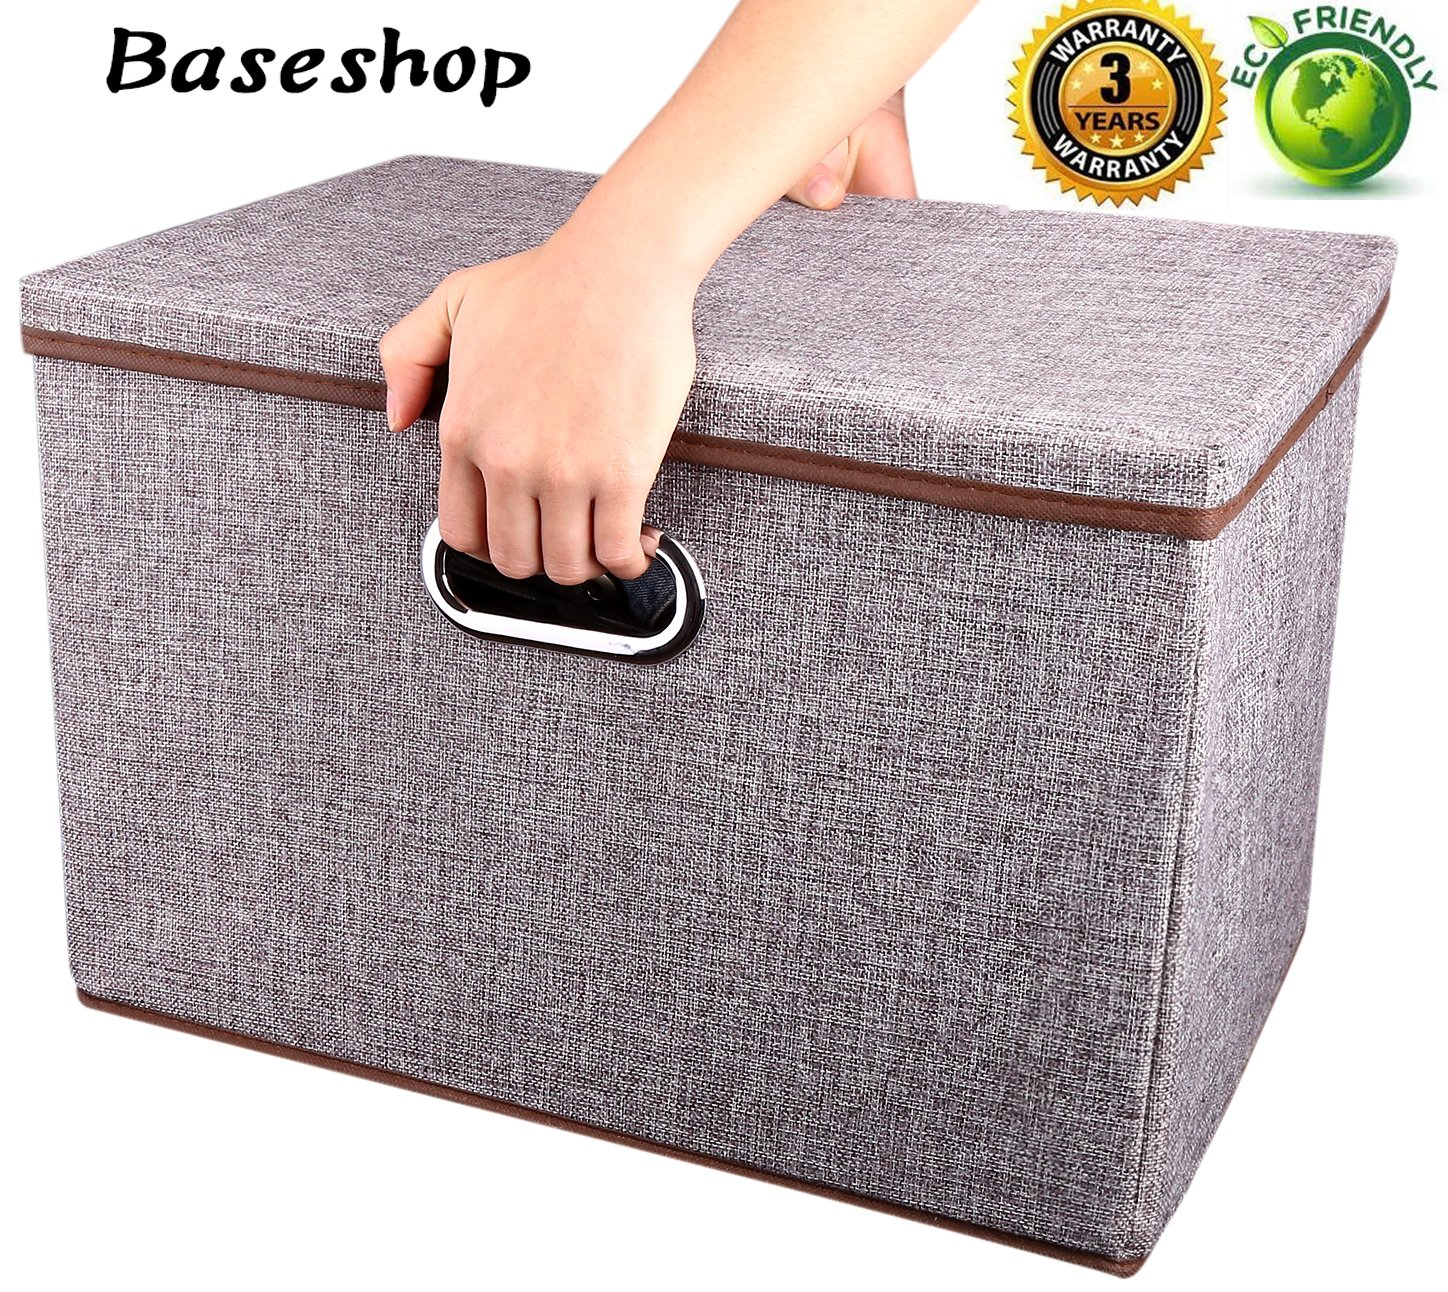 Storage Container Organizer bin Collapsible,Large Foldable Linen Fabric Gray Box with Removable Lid and Handles, for Home,Baby,Office,Nursery,Closet,Bedroom,Living Room,NO Peculiar Smell [1-Pack]